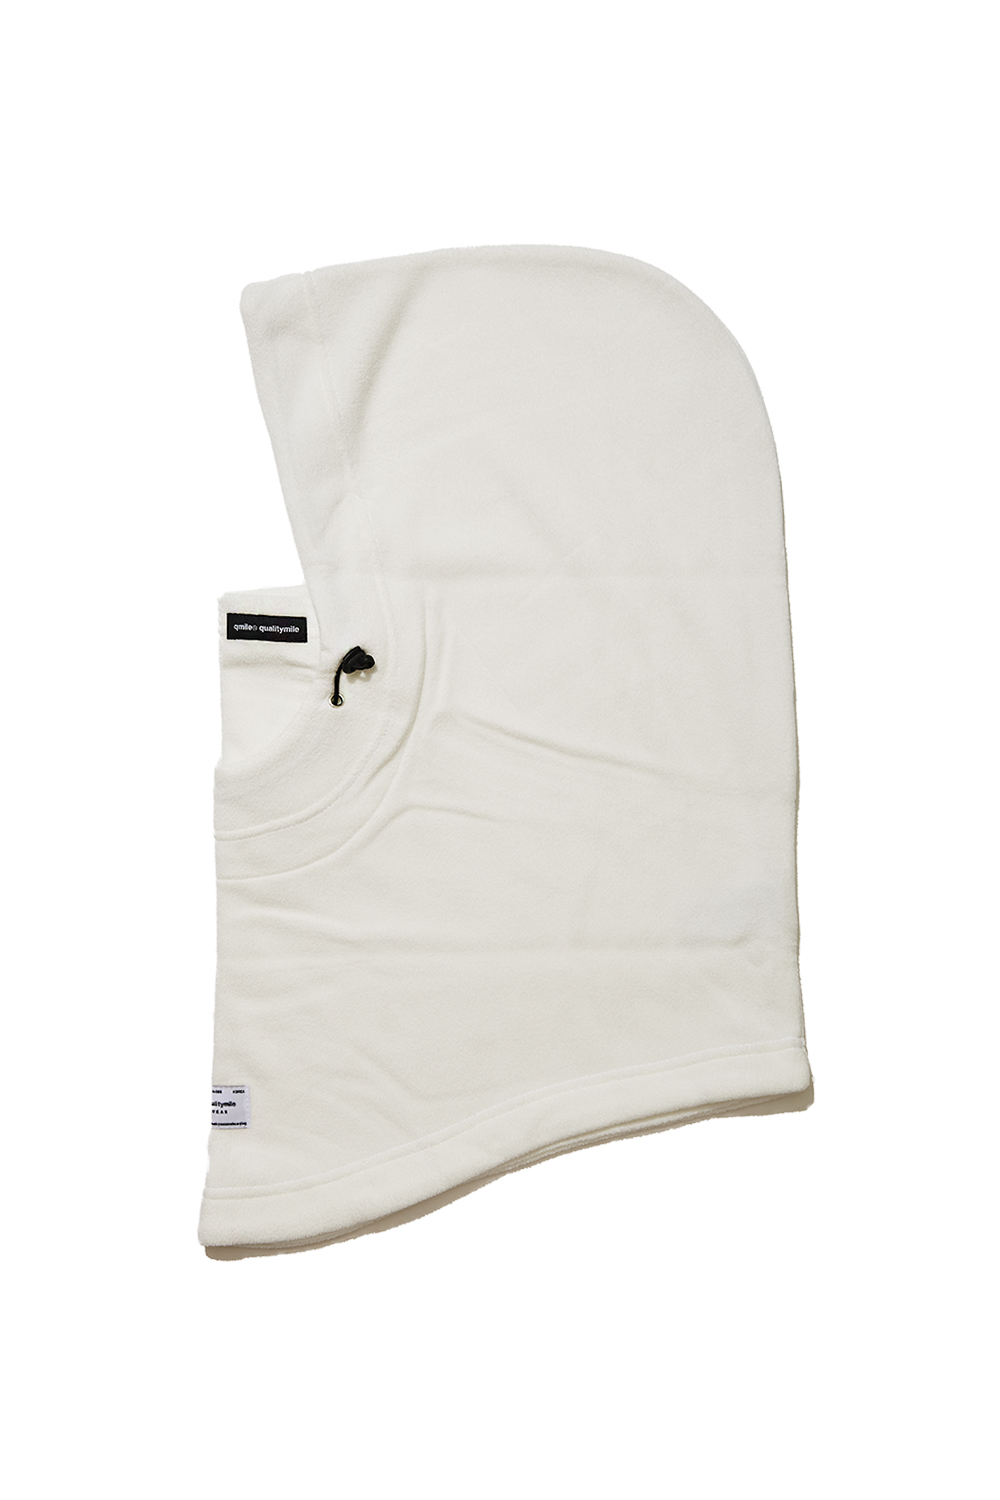 HOOD WARMER / FLEECE | WHITE